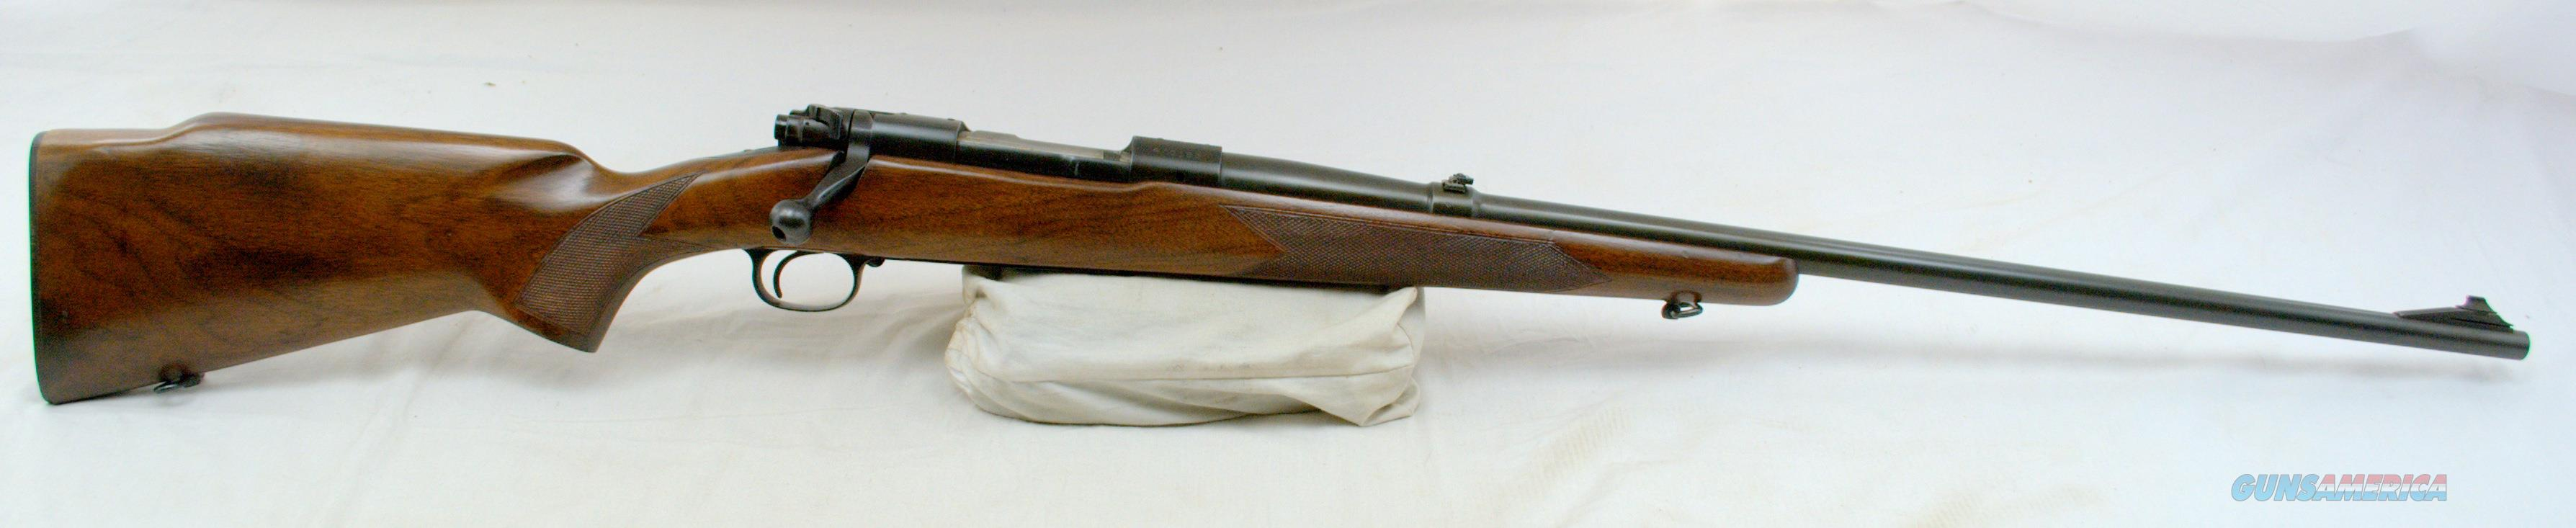 Winchester 70 Westerner Pre 64 Bolt Action Rifle 264 Wm